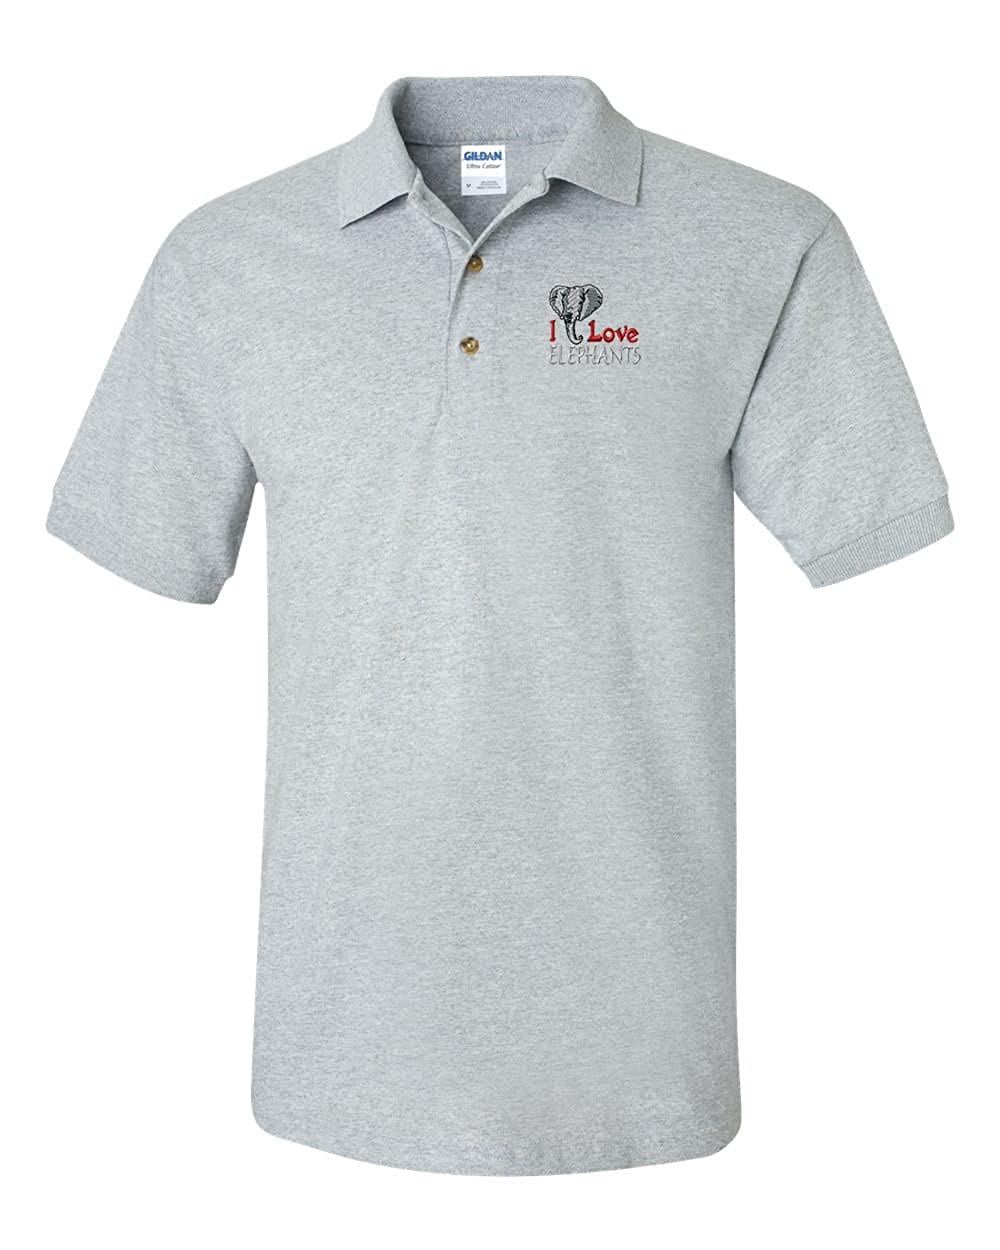 I Love Elephants Custom Personalized Embroidery Embroidered Golf